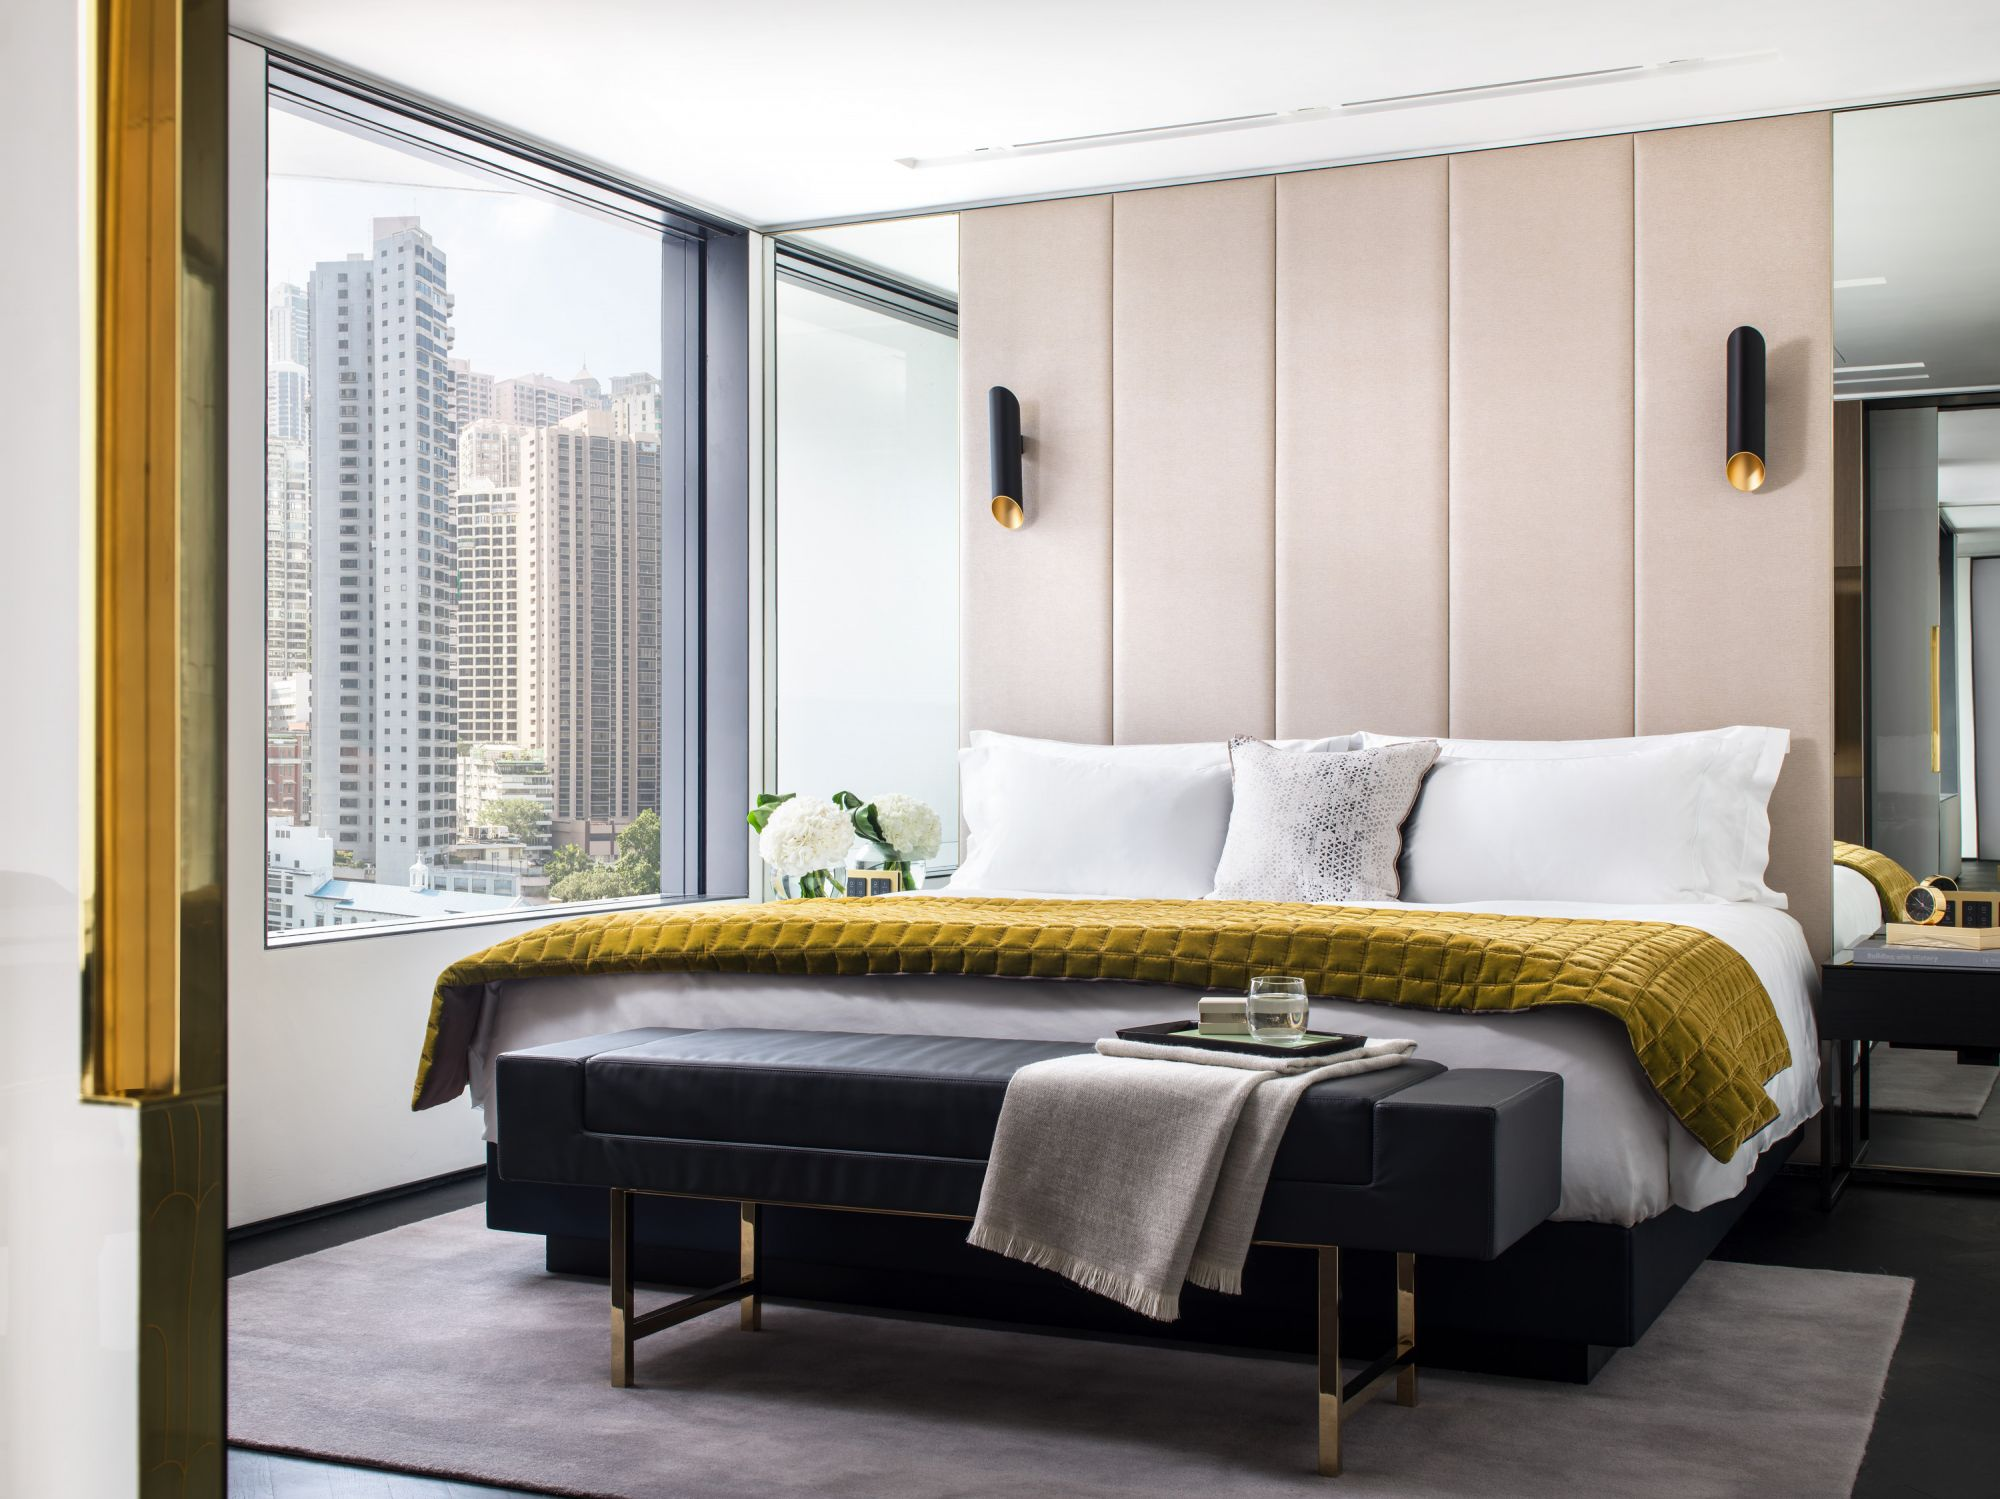 Valentine's Day 2020: 5 Romantic Staycations To Book In Hong Kong